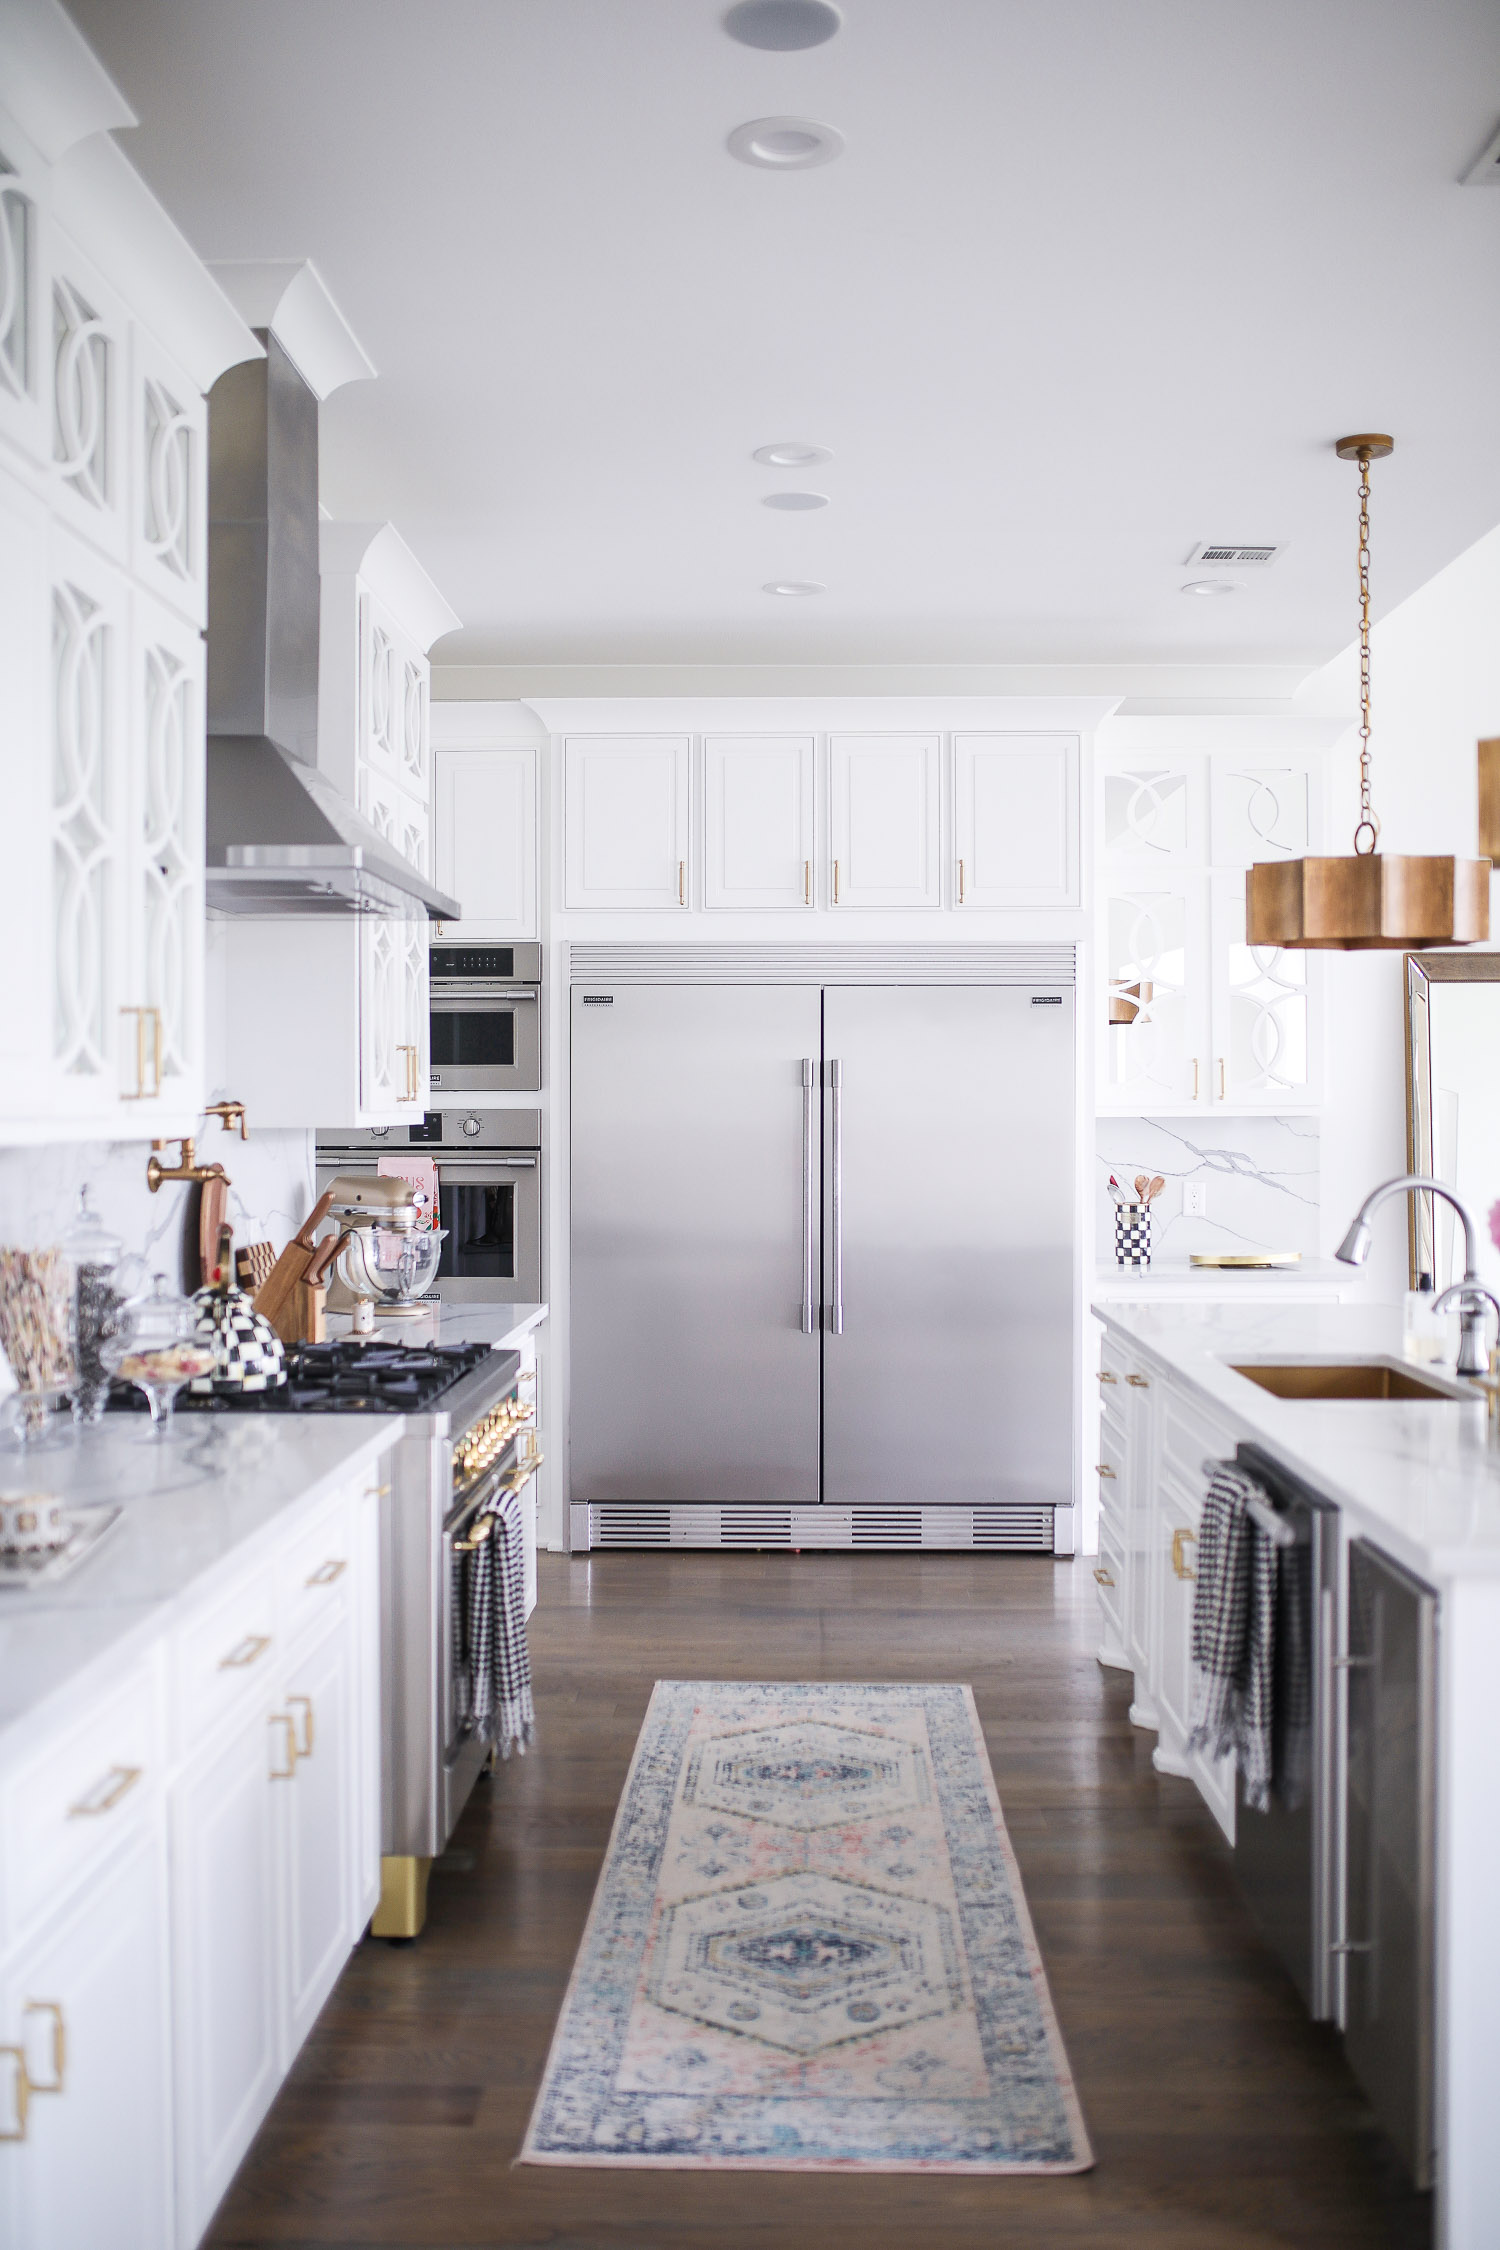 Spring Kitchen by popular US life and style blog: image of a kitchen with white cabinets, wood flooring, wooden light pendants, marble counter tops, and light pink and blue runner rug.